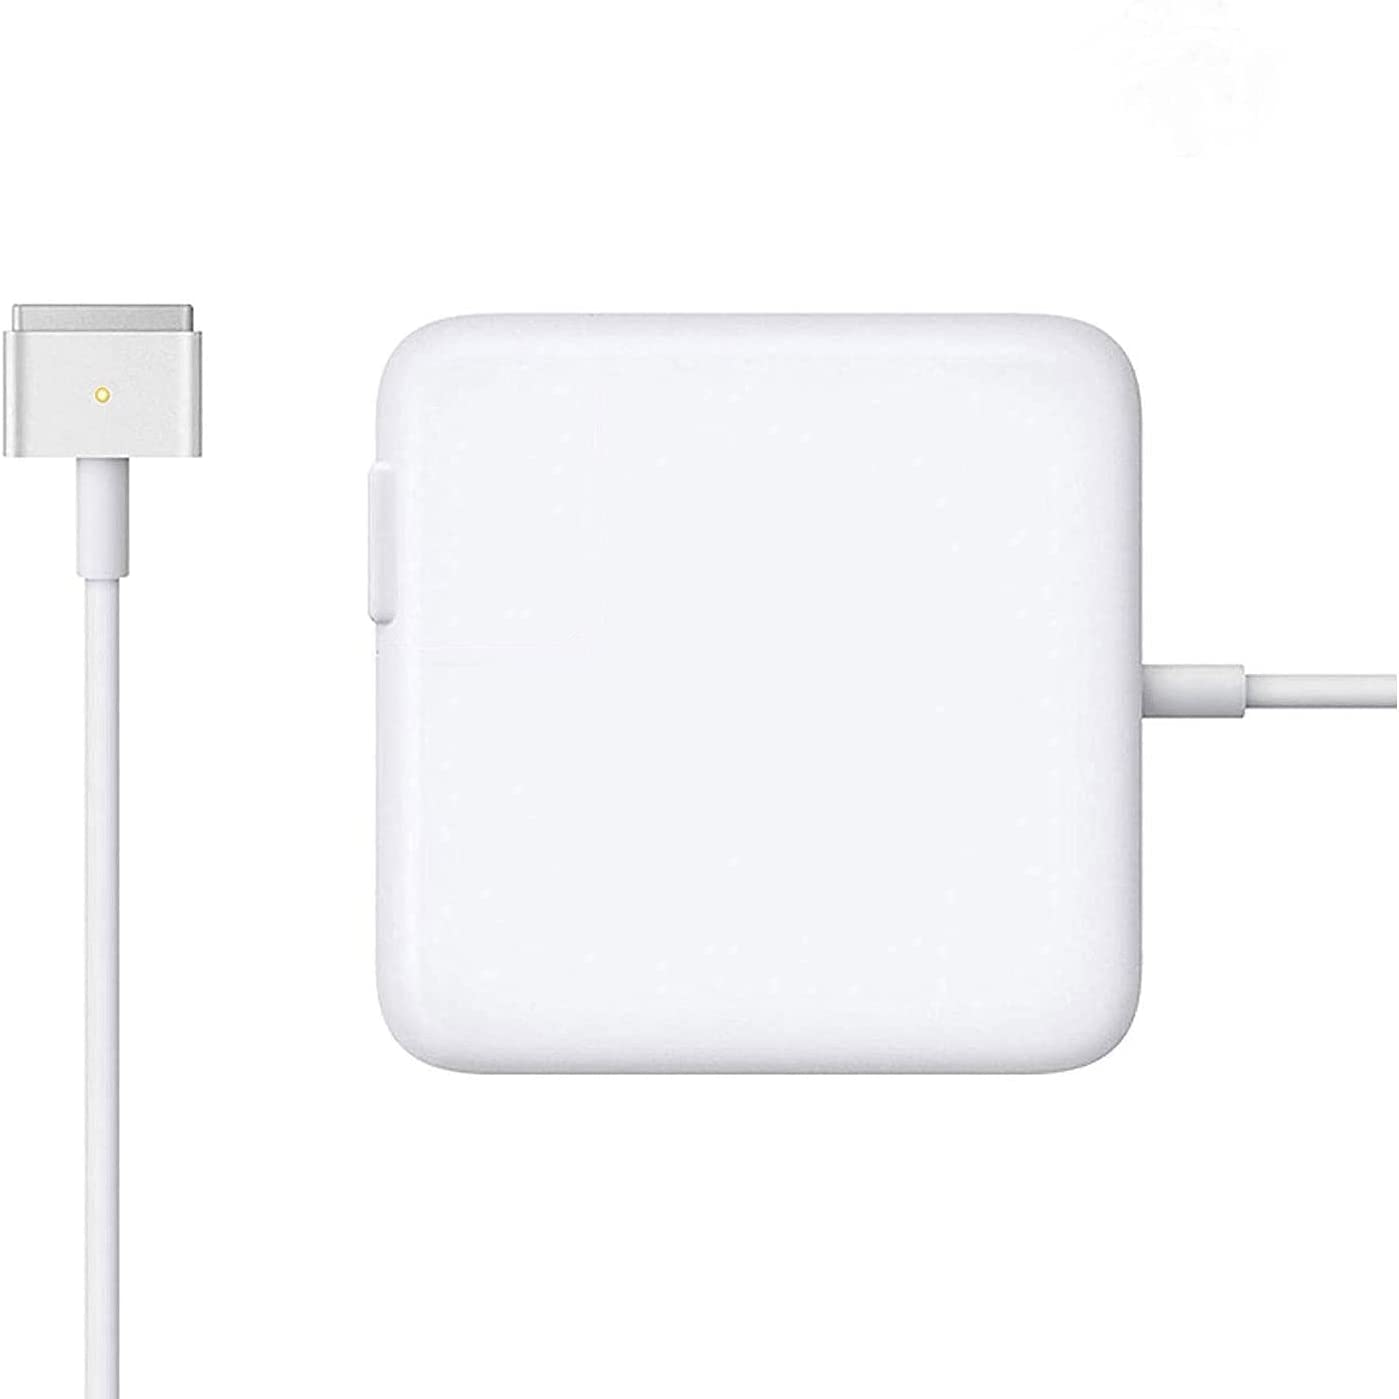 Charger Compatible with Mac Book Air for 11 inch and 13 inch After Mid 2012, AC 45W (T-tip) Shape Connector Power Adapter